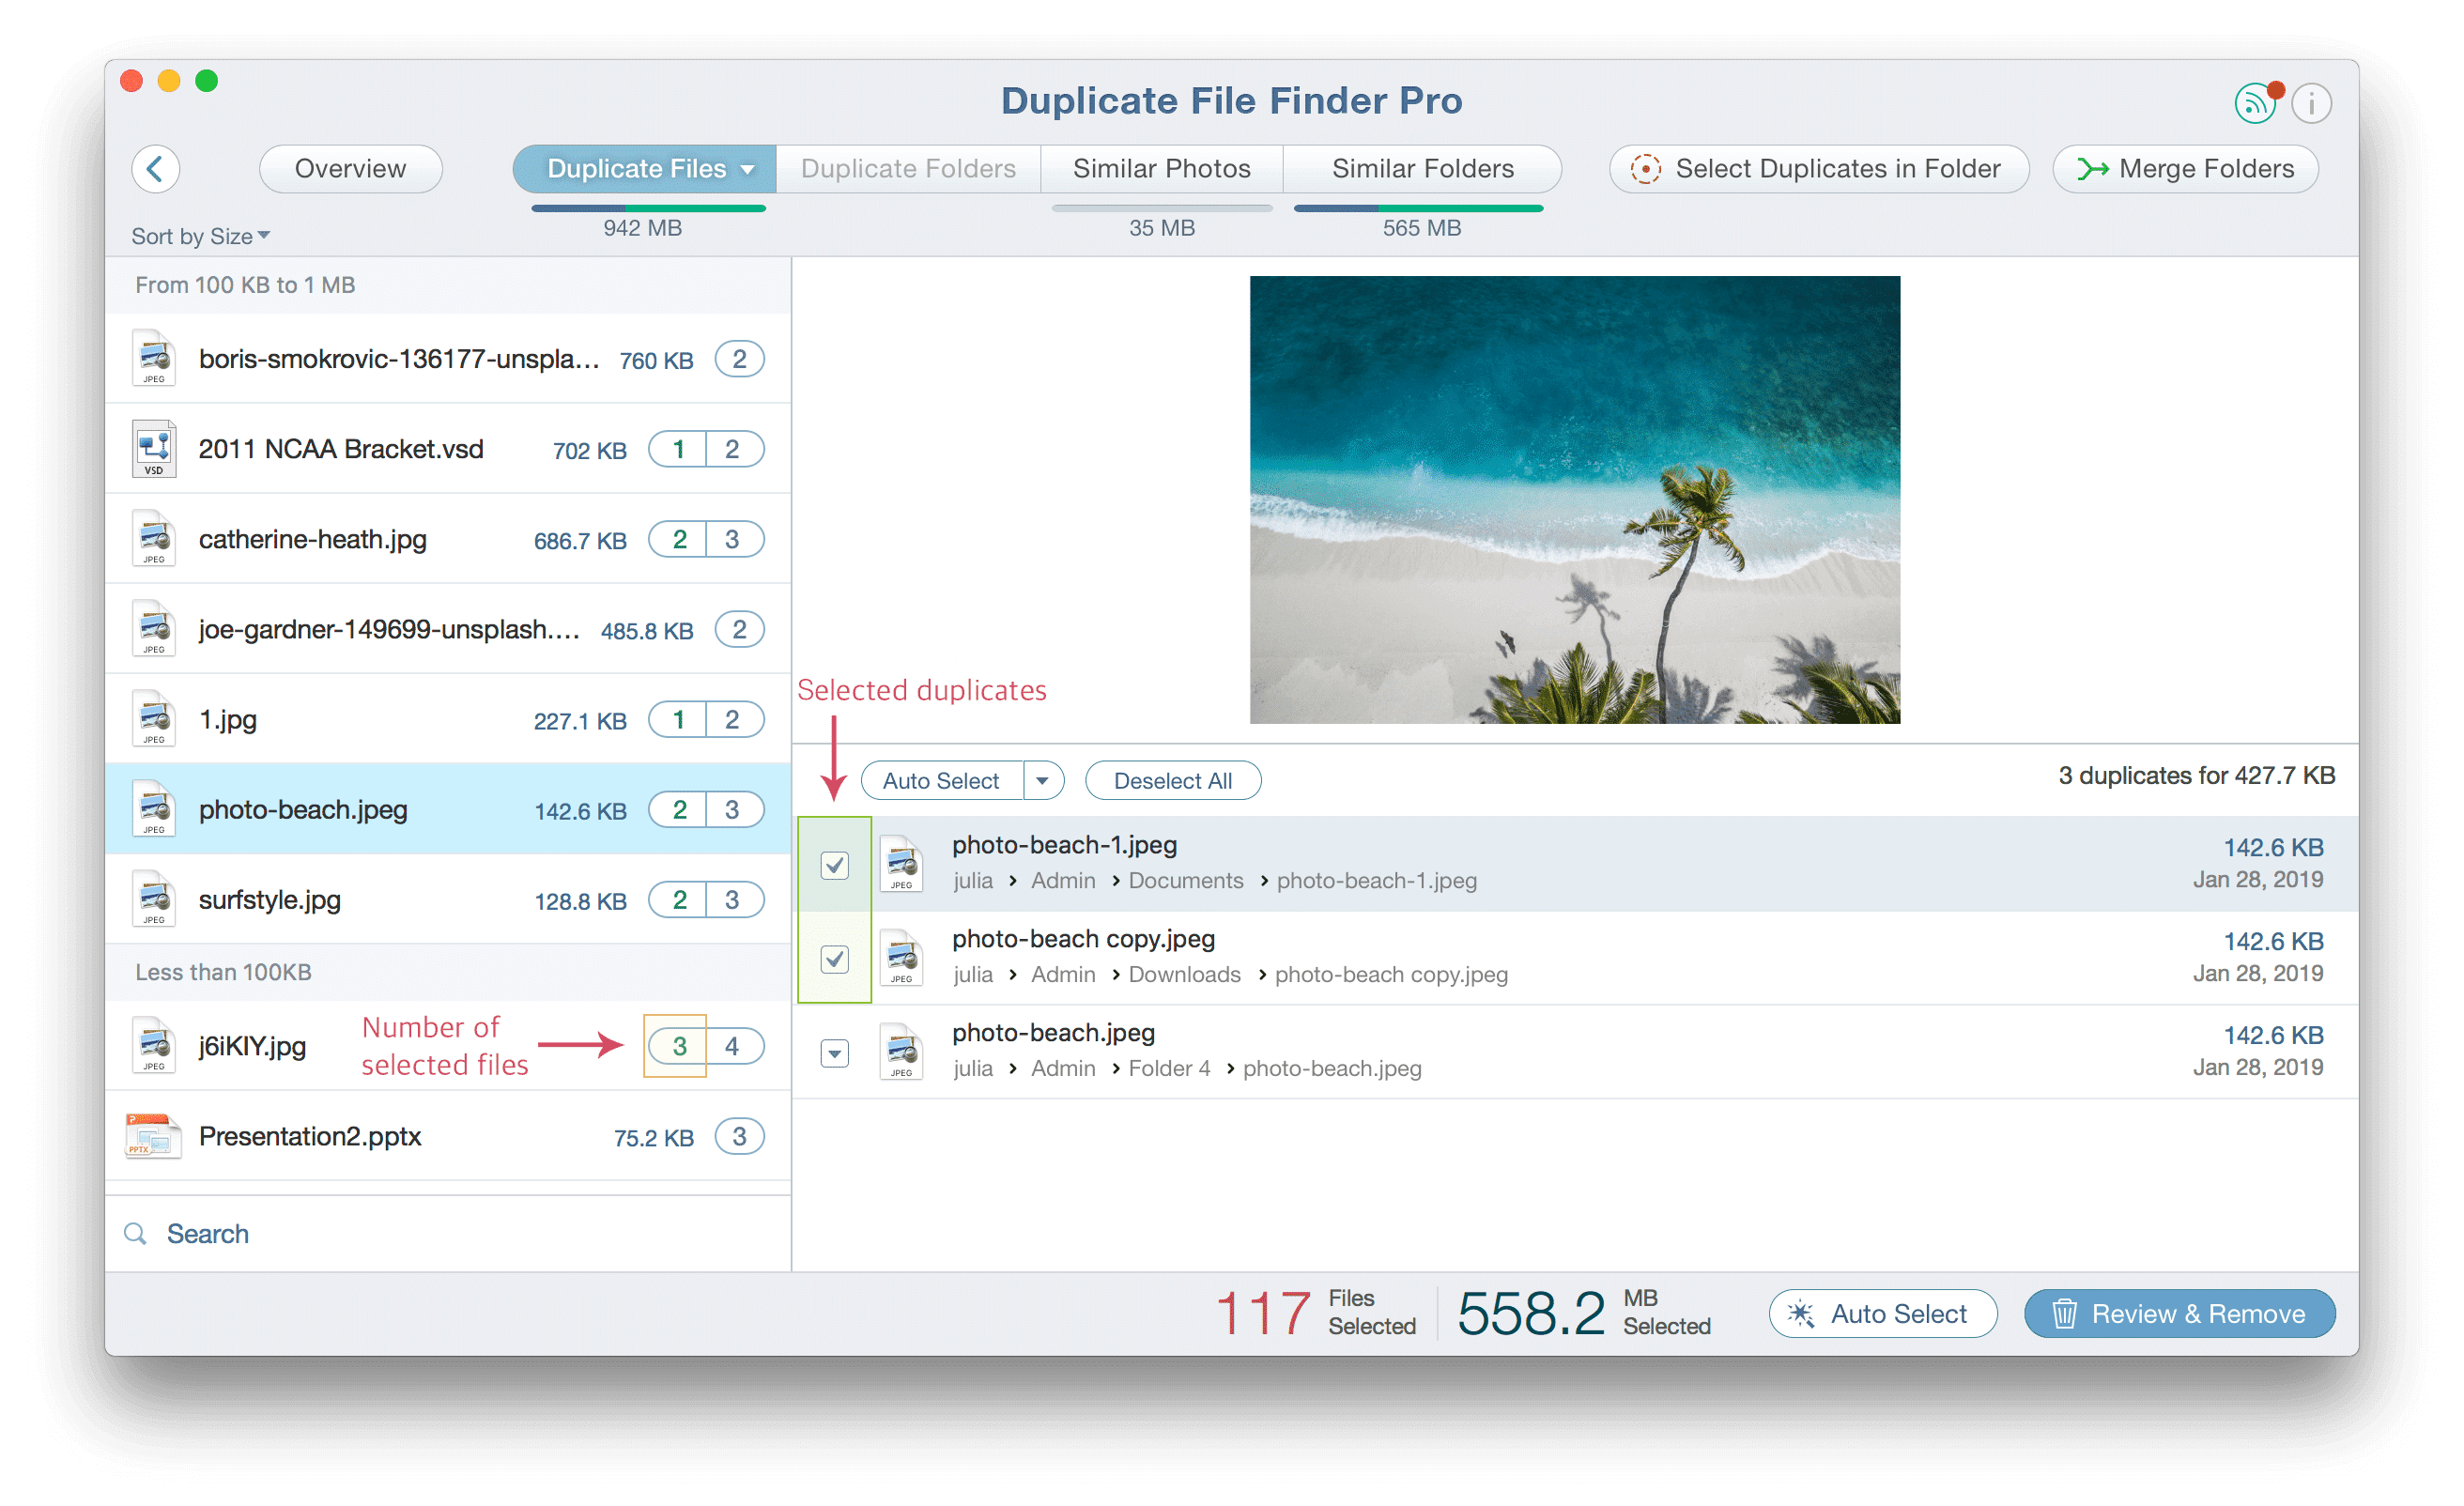 Duplicate File Finder with selected files highlighted